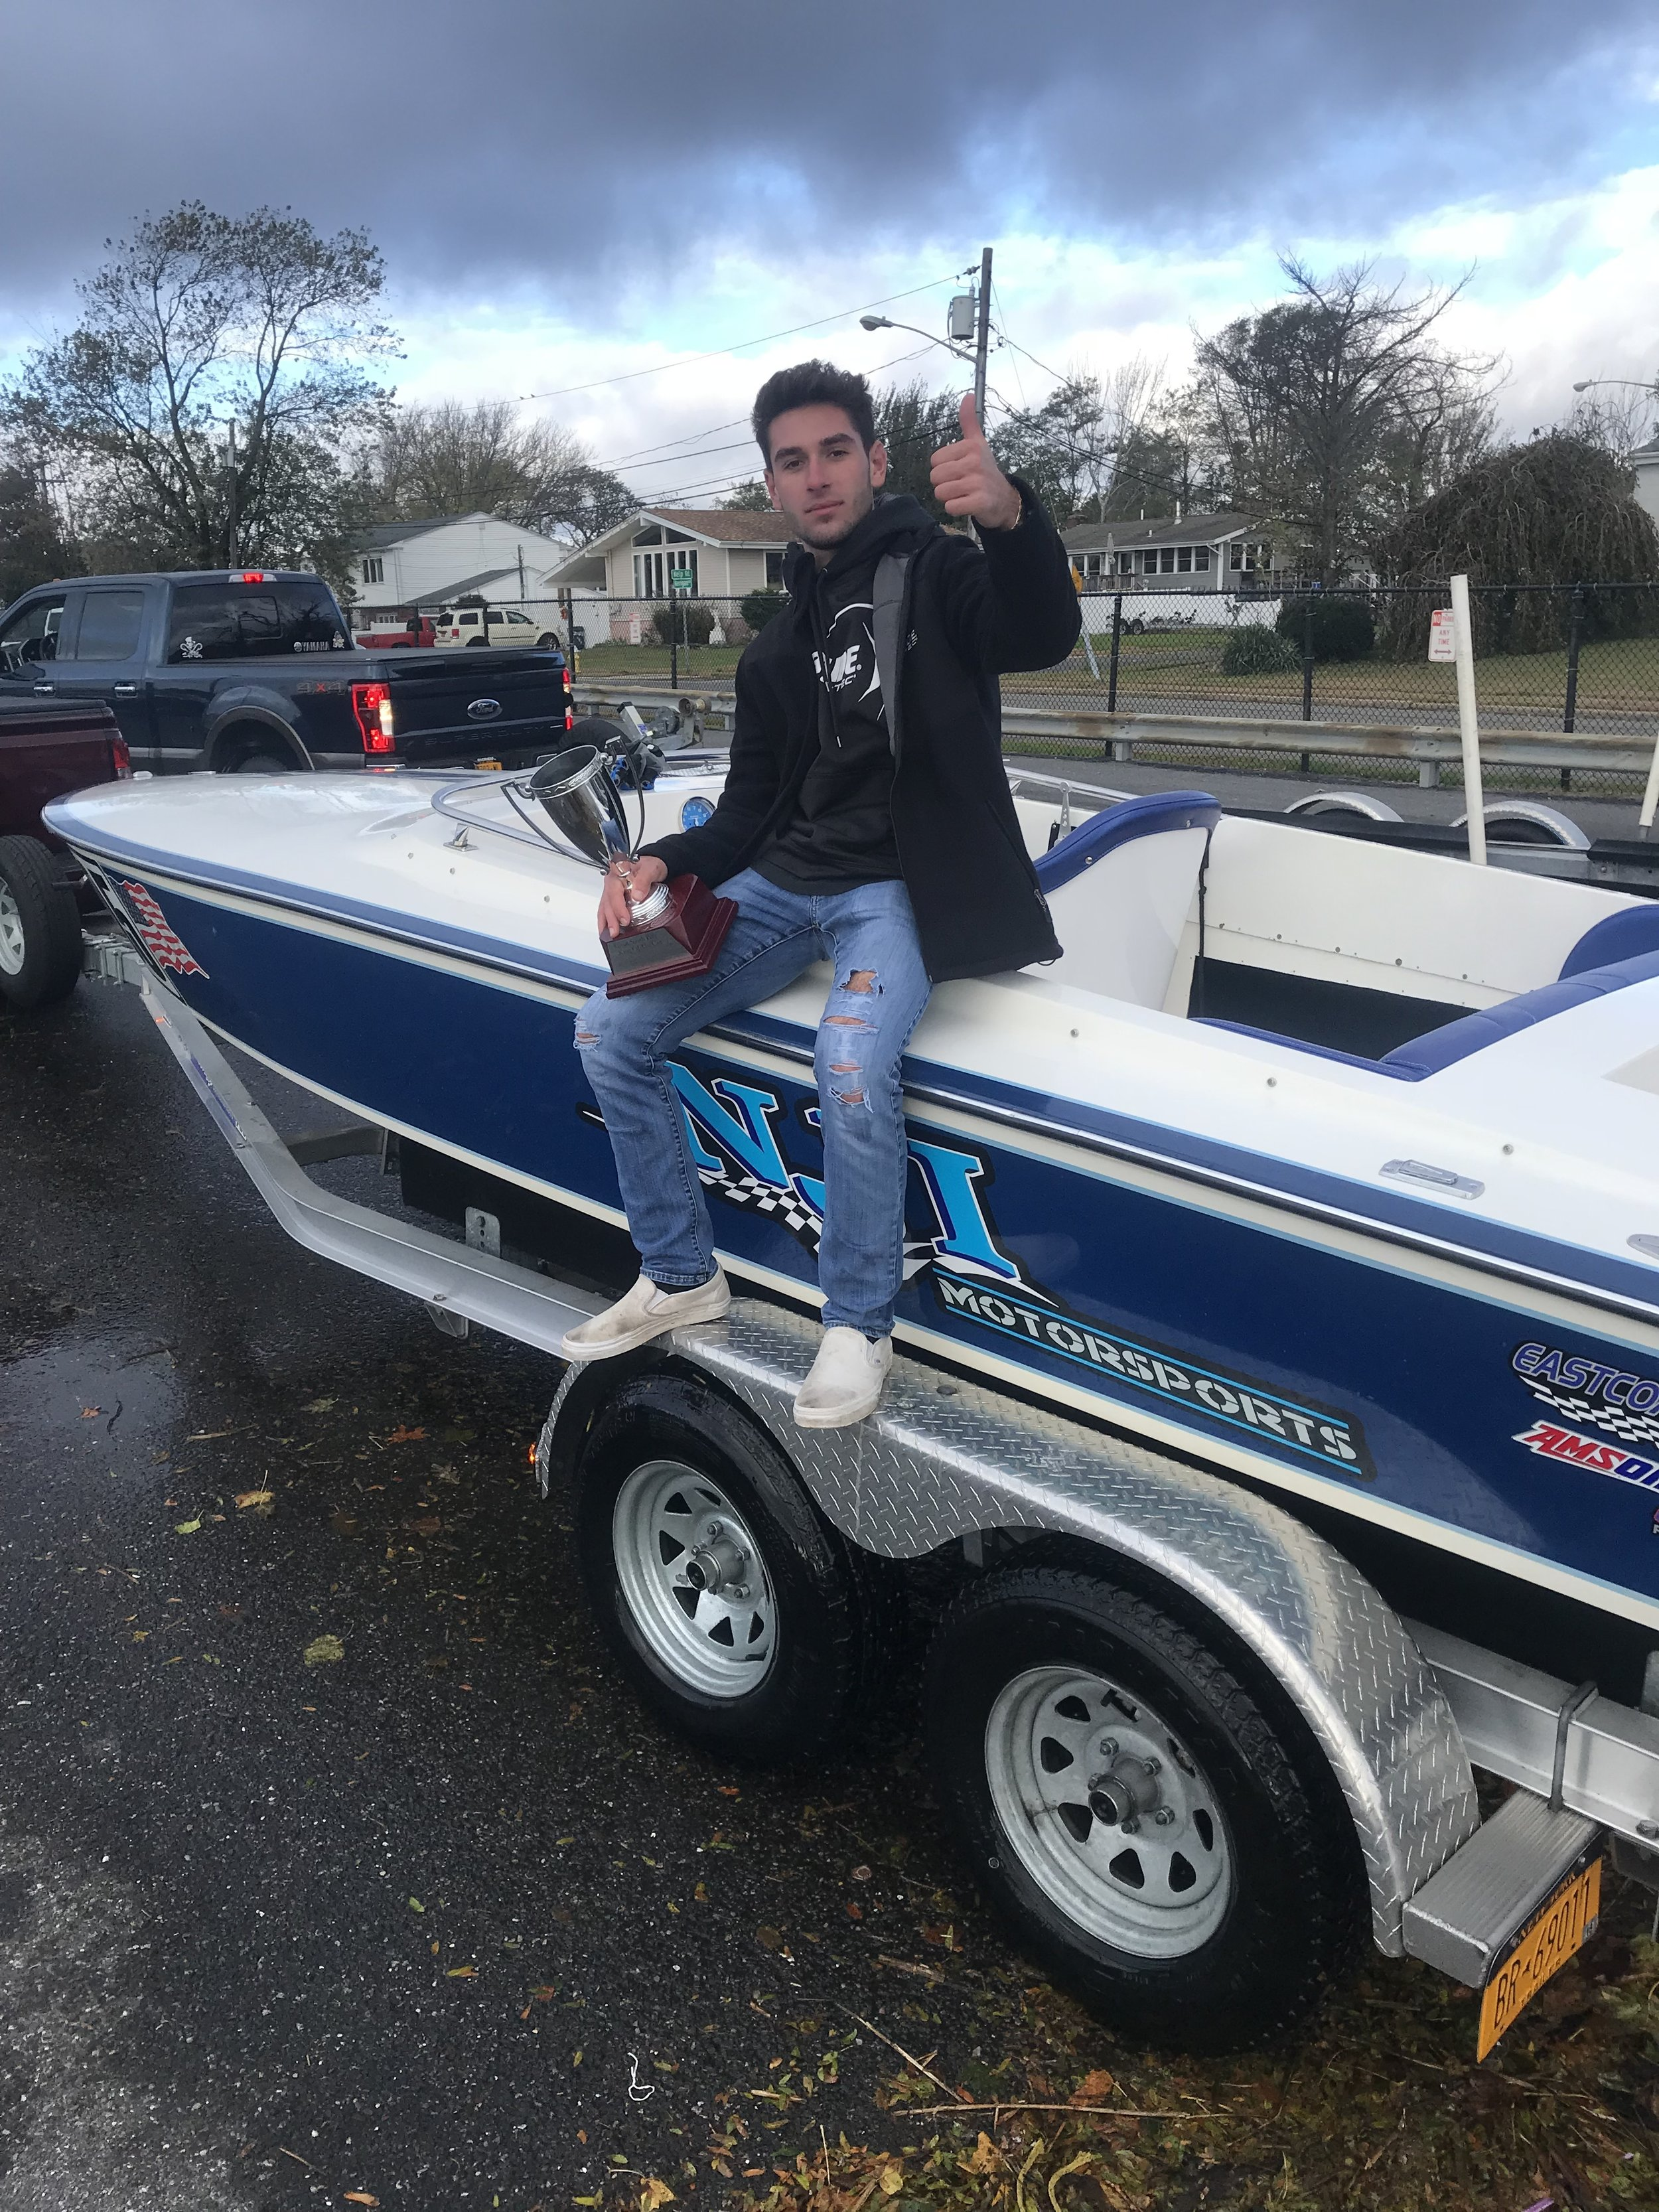 Racing - At 17 years old, Nick Imprescia is already making an impact in his racing career. Seen here sitting on his beautiful 21' Superboat (NJI Motorsports)